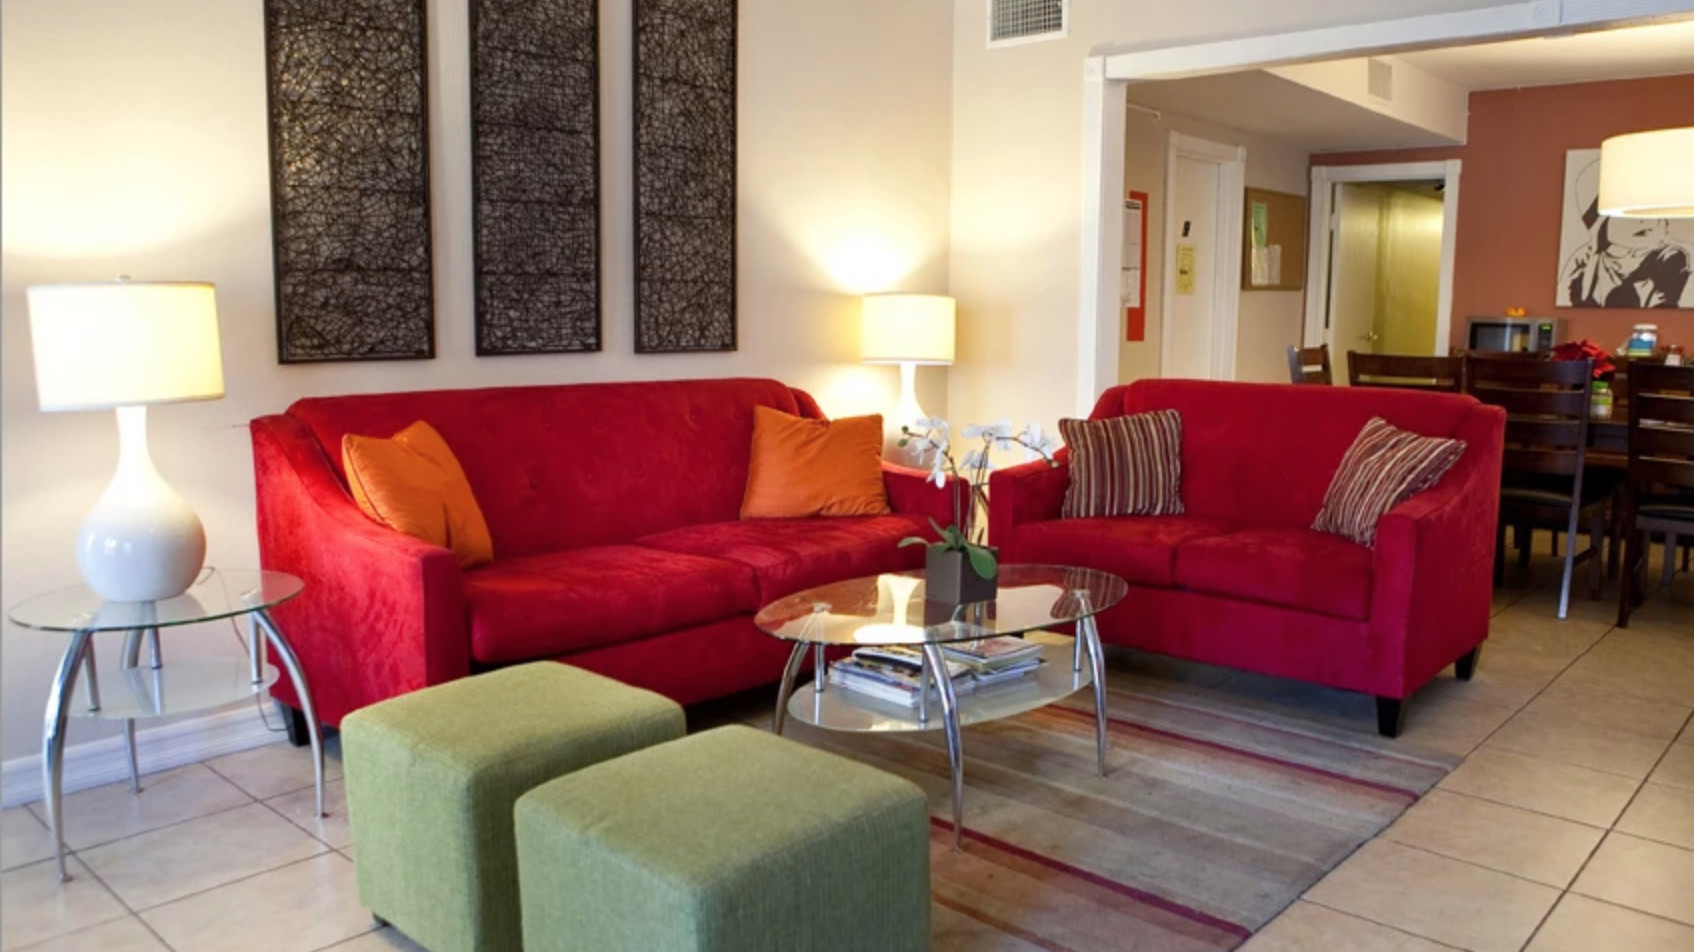 red-sofas-in-living-room